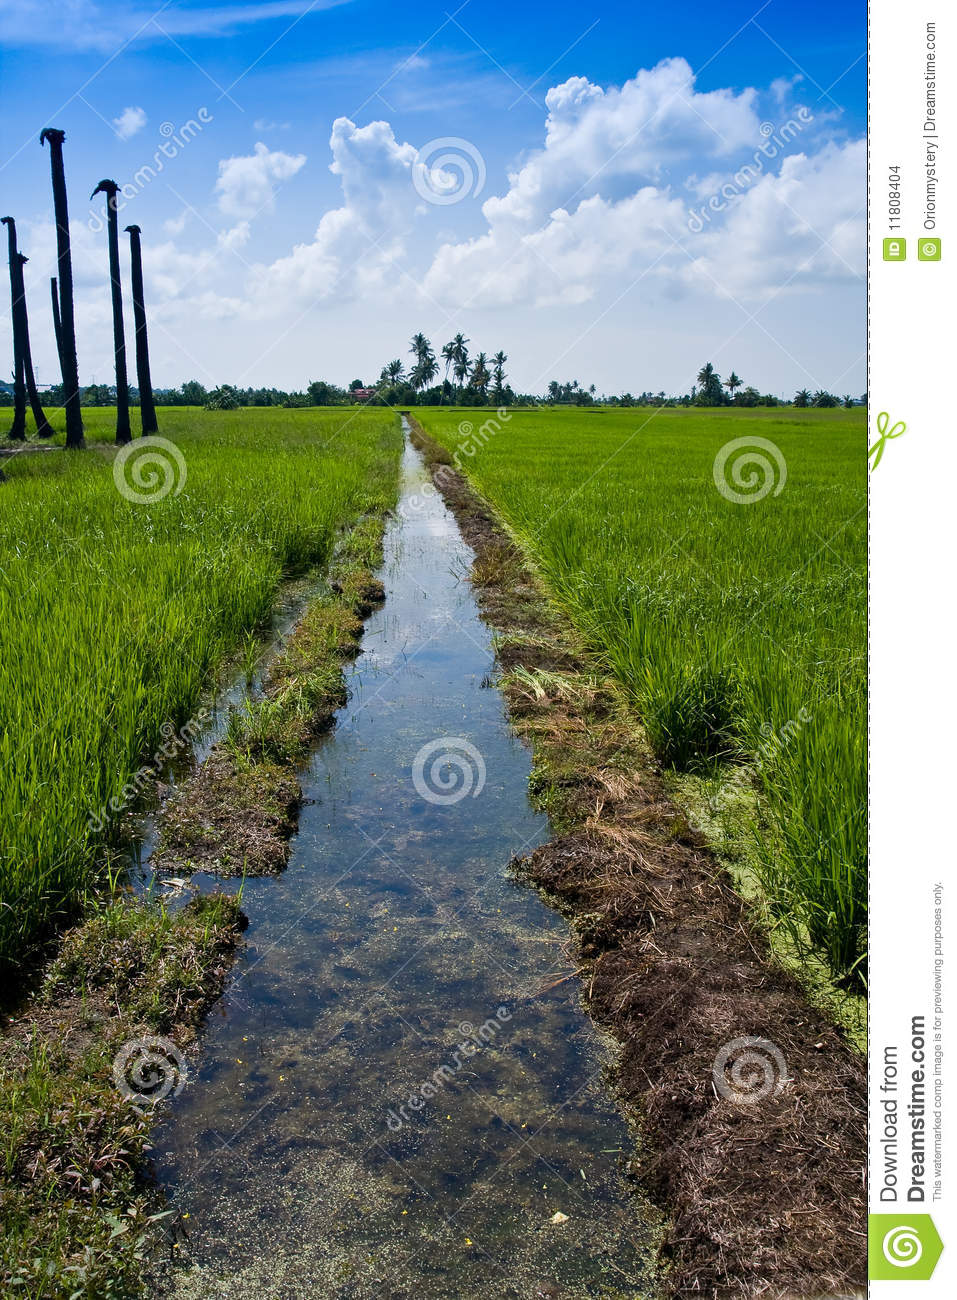 Irrigation Drain At A Paddy Field On A Sunny Day Stock